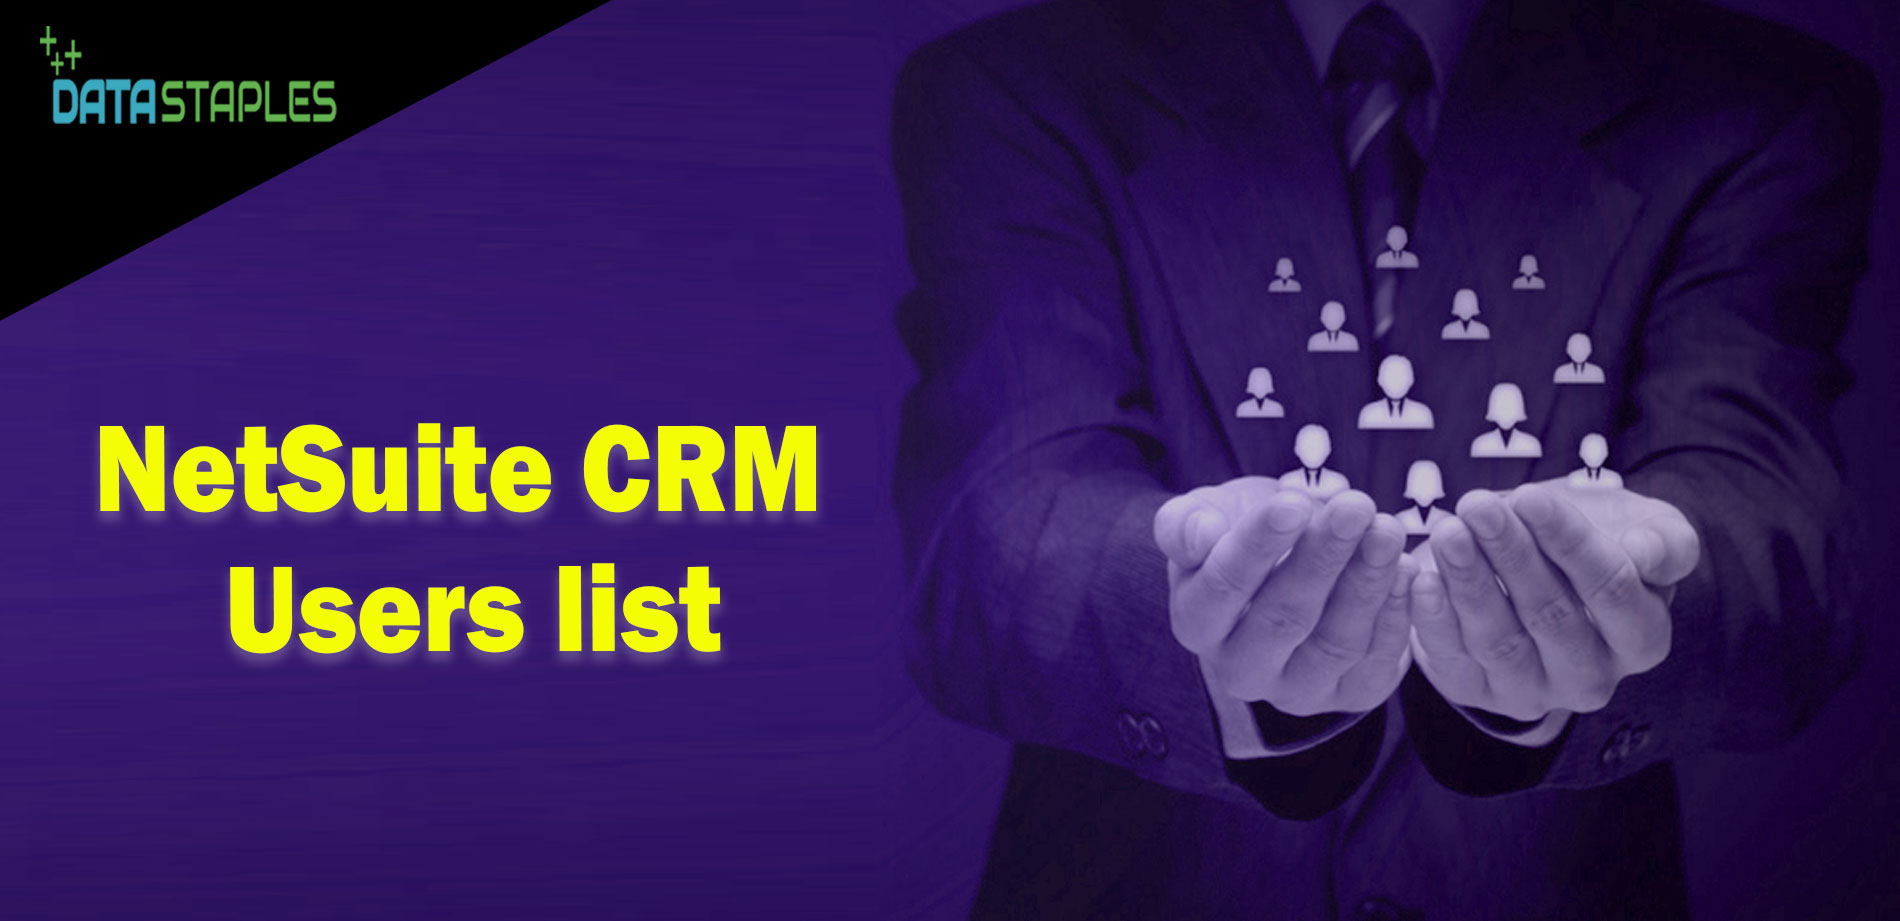 NetSuite CRM Users Mailing List | DataStaples